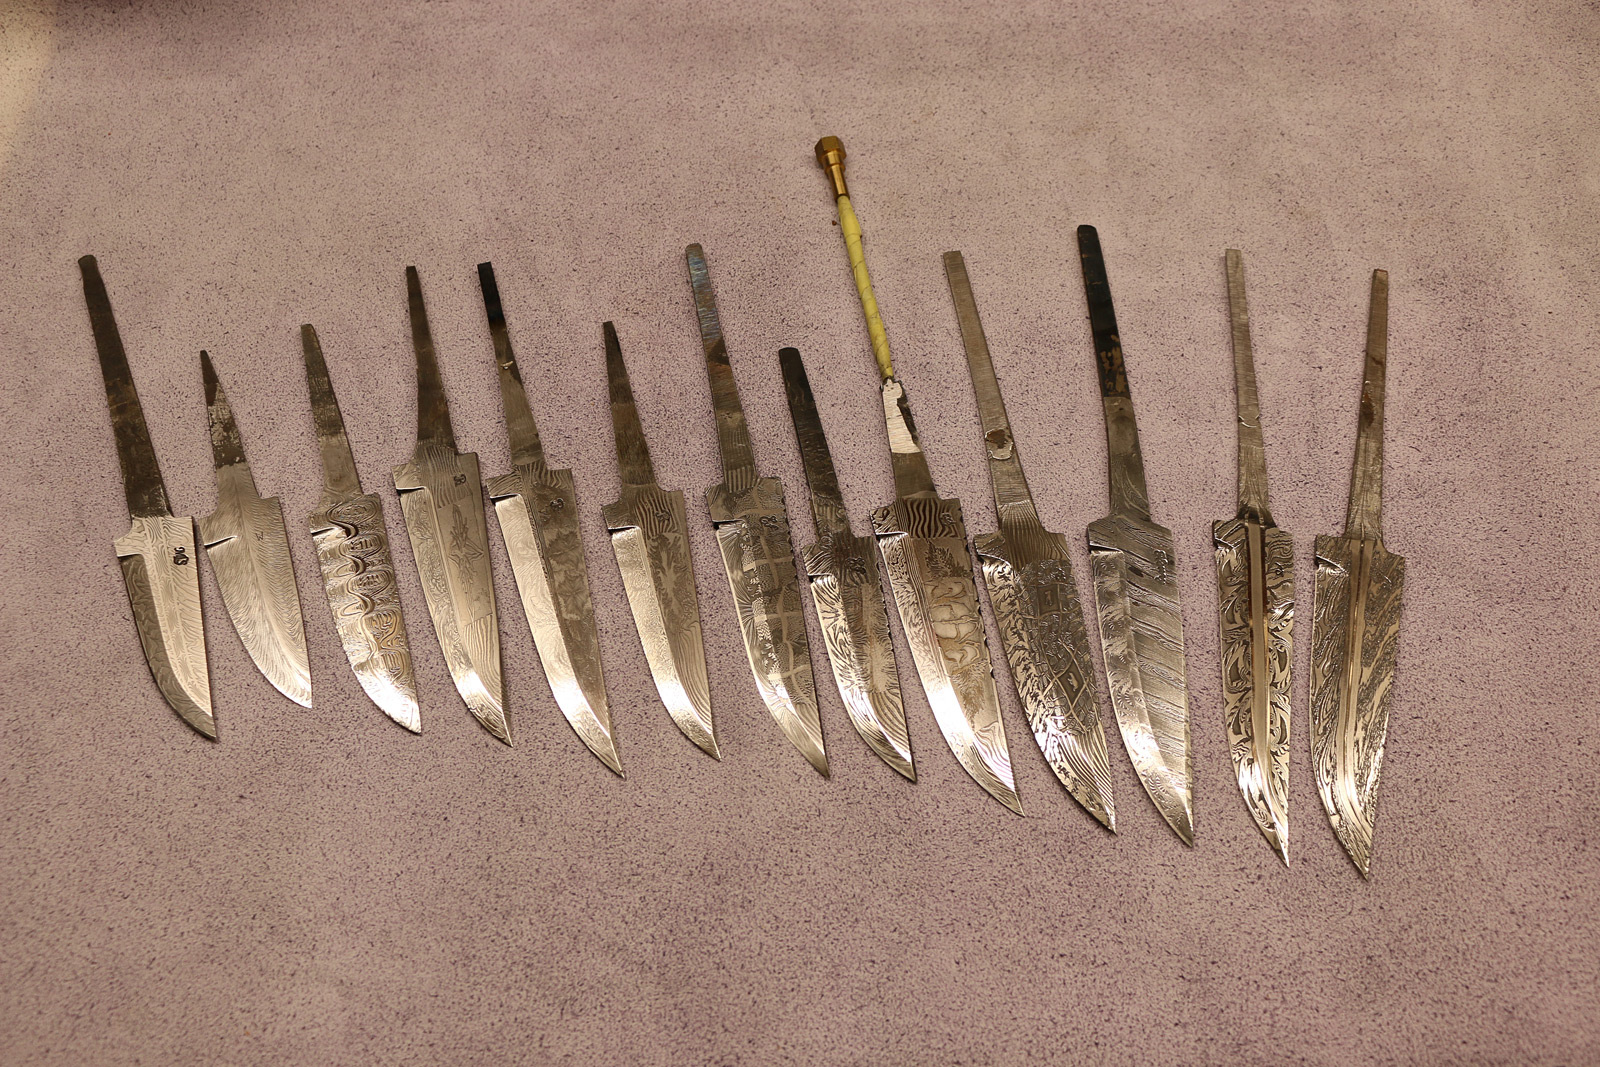 Knife Blade Materials And Descriptions From JSC Knife Art